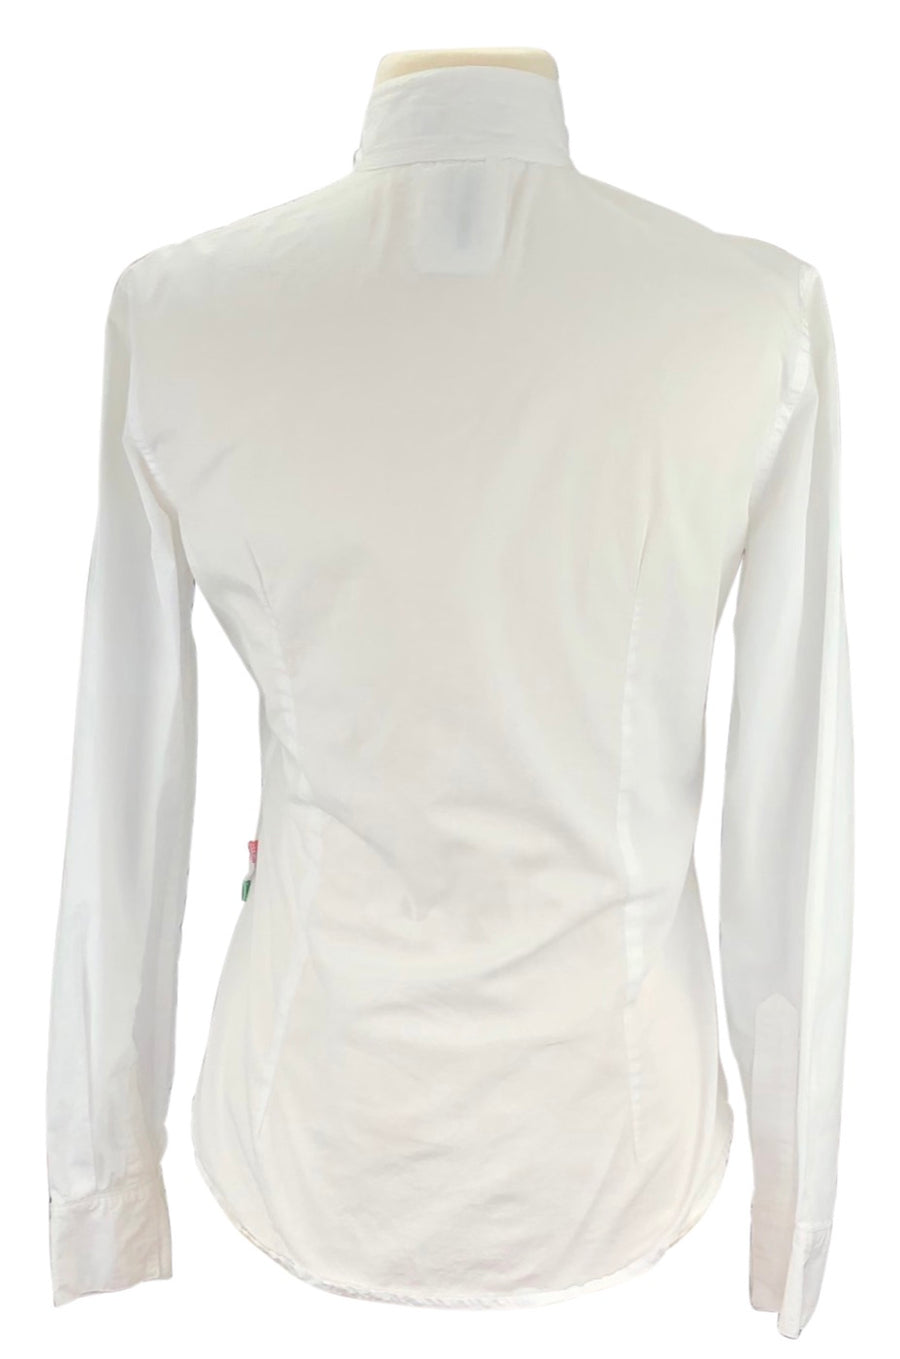 back view of Alessandro Albanese Deauville Show Shirt in White